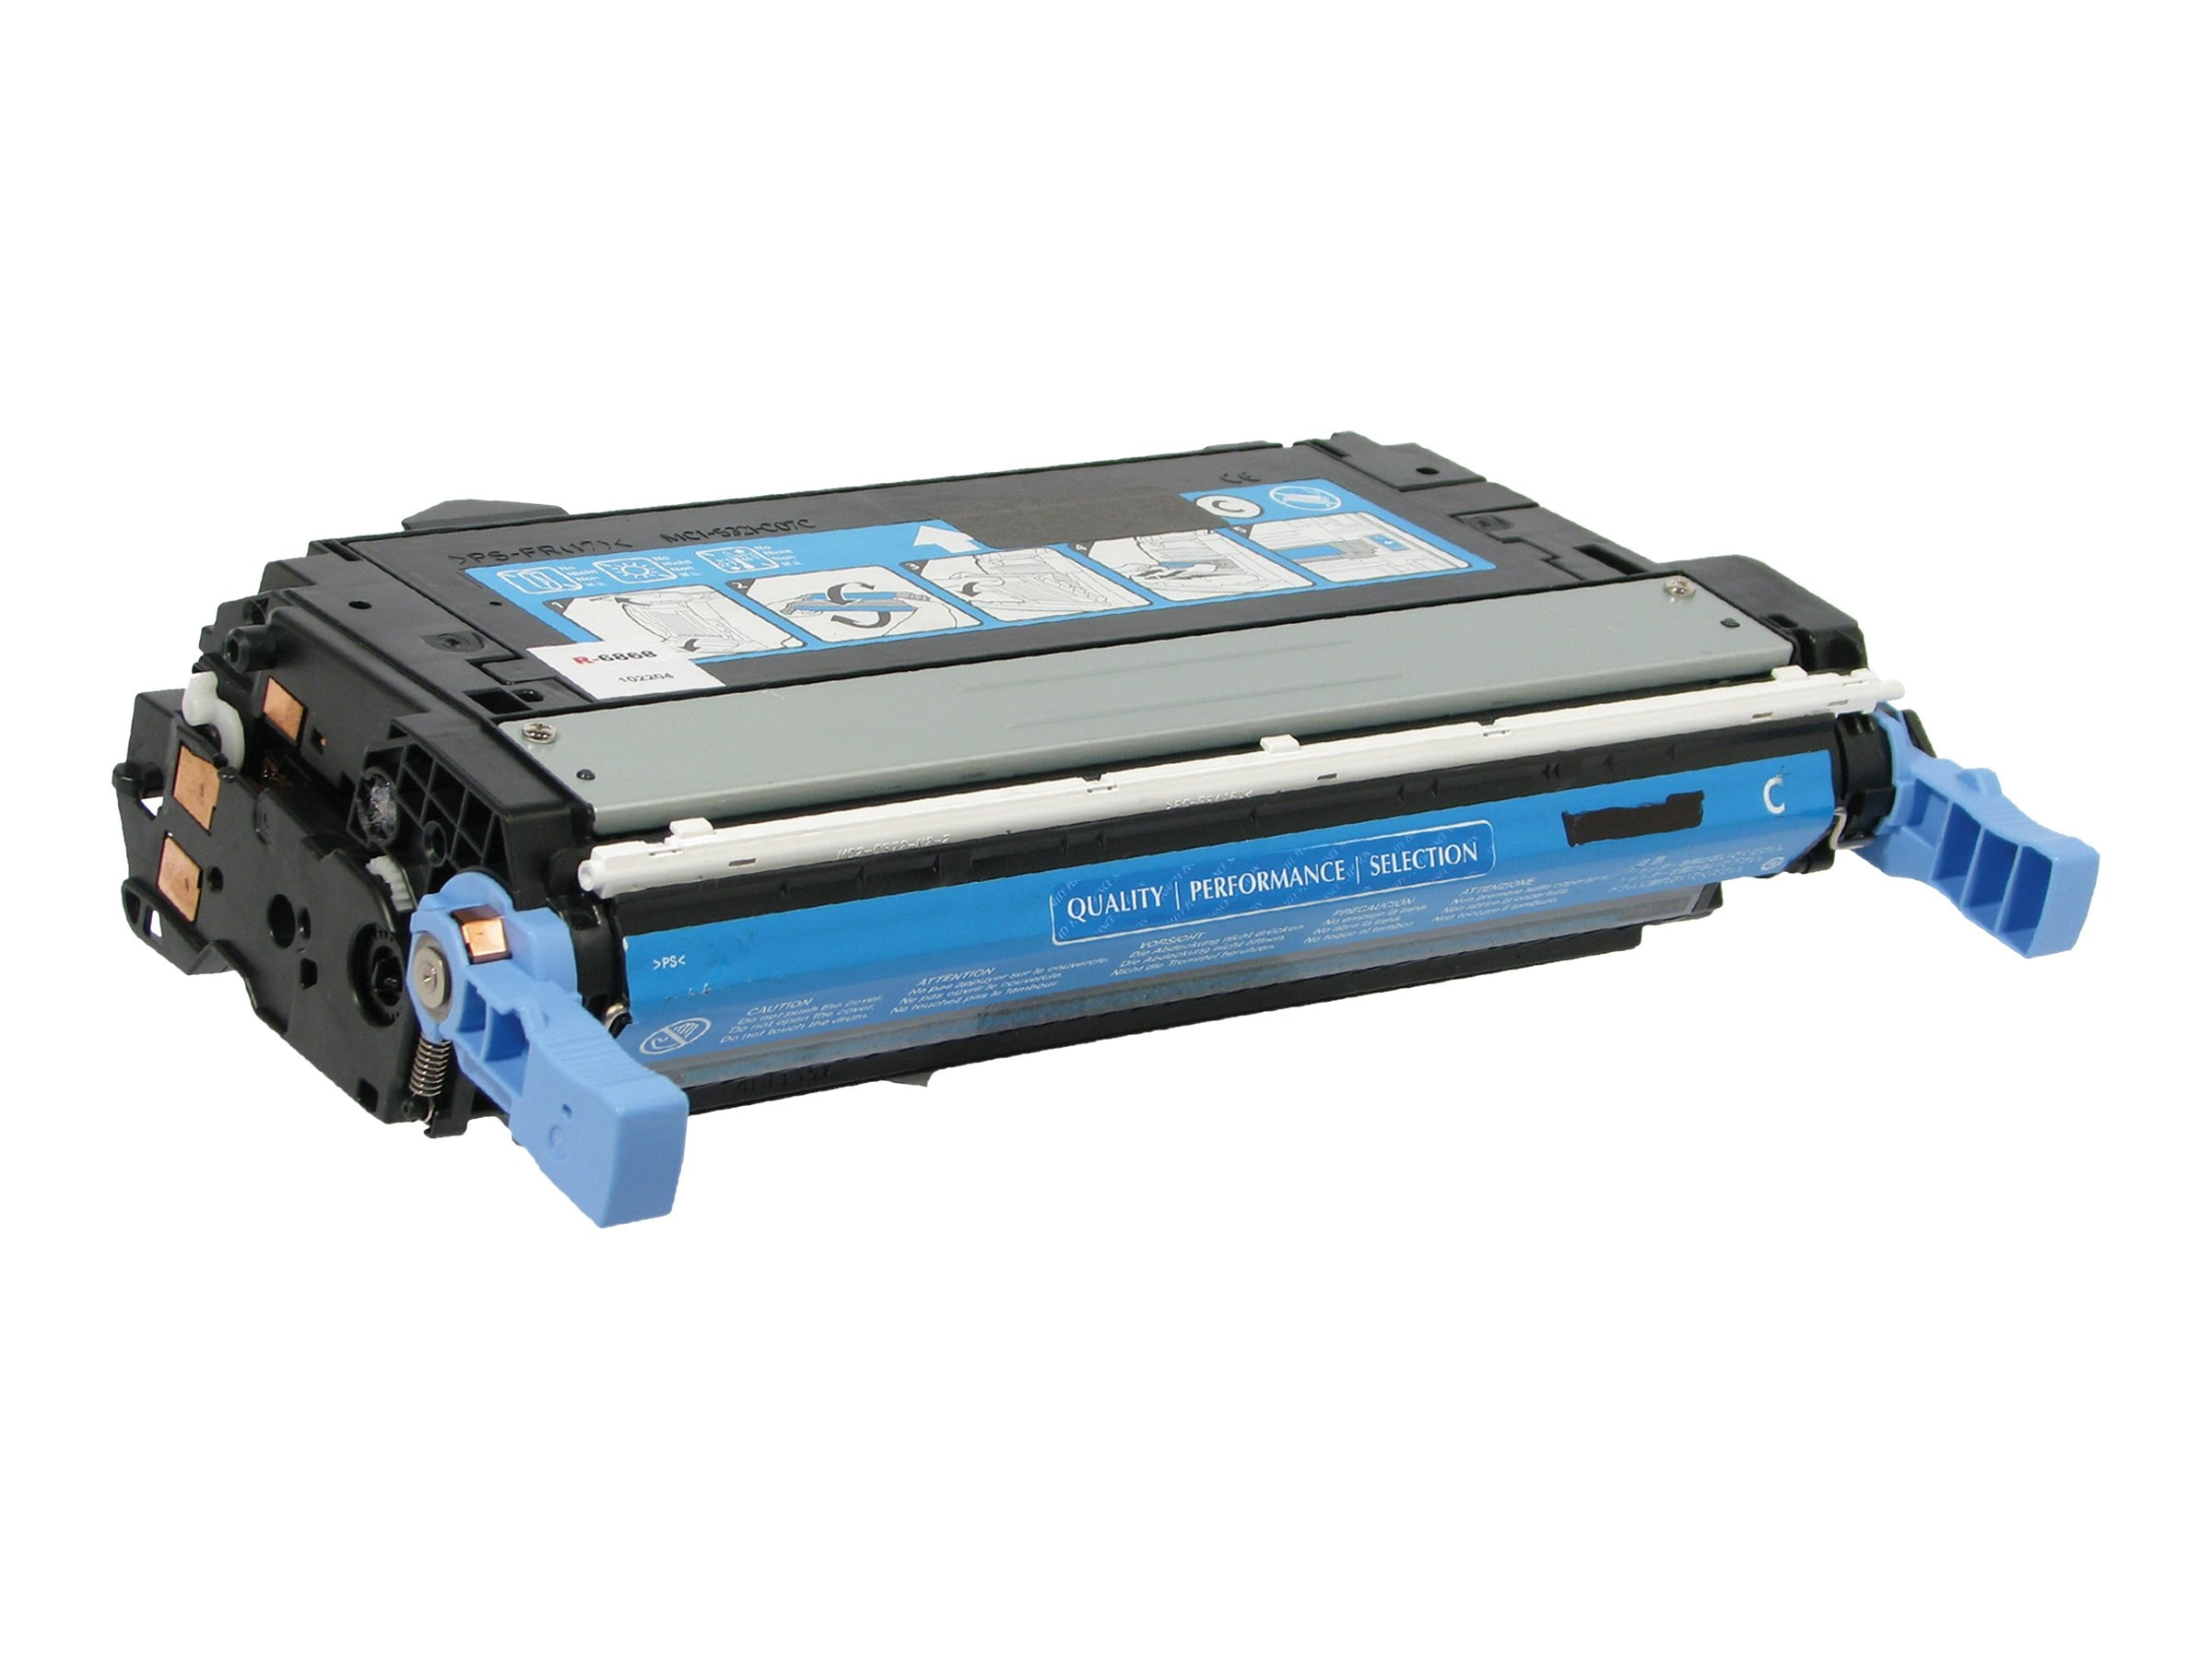 V7 Cyan Toner Cartridge for HP Color LaserJet 4600, V74600CG, 11056894, Toner and Imaging Components